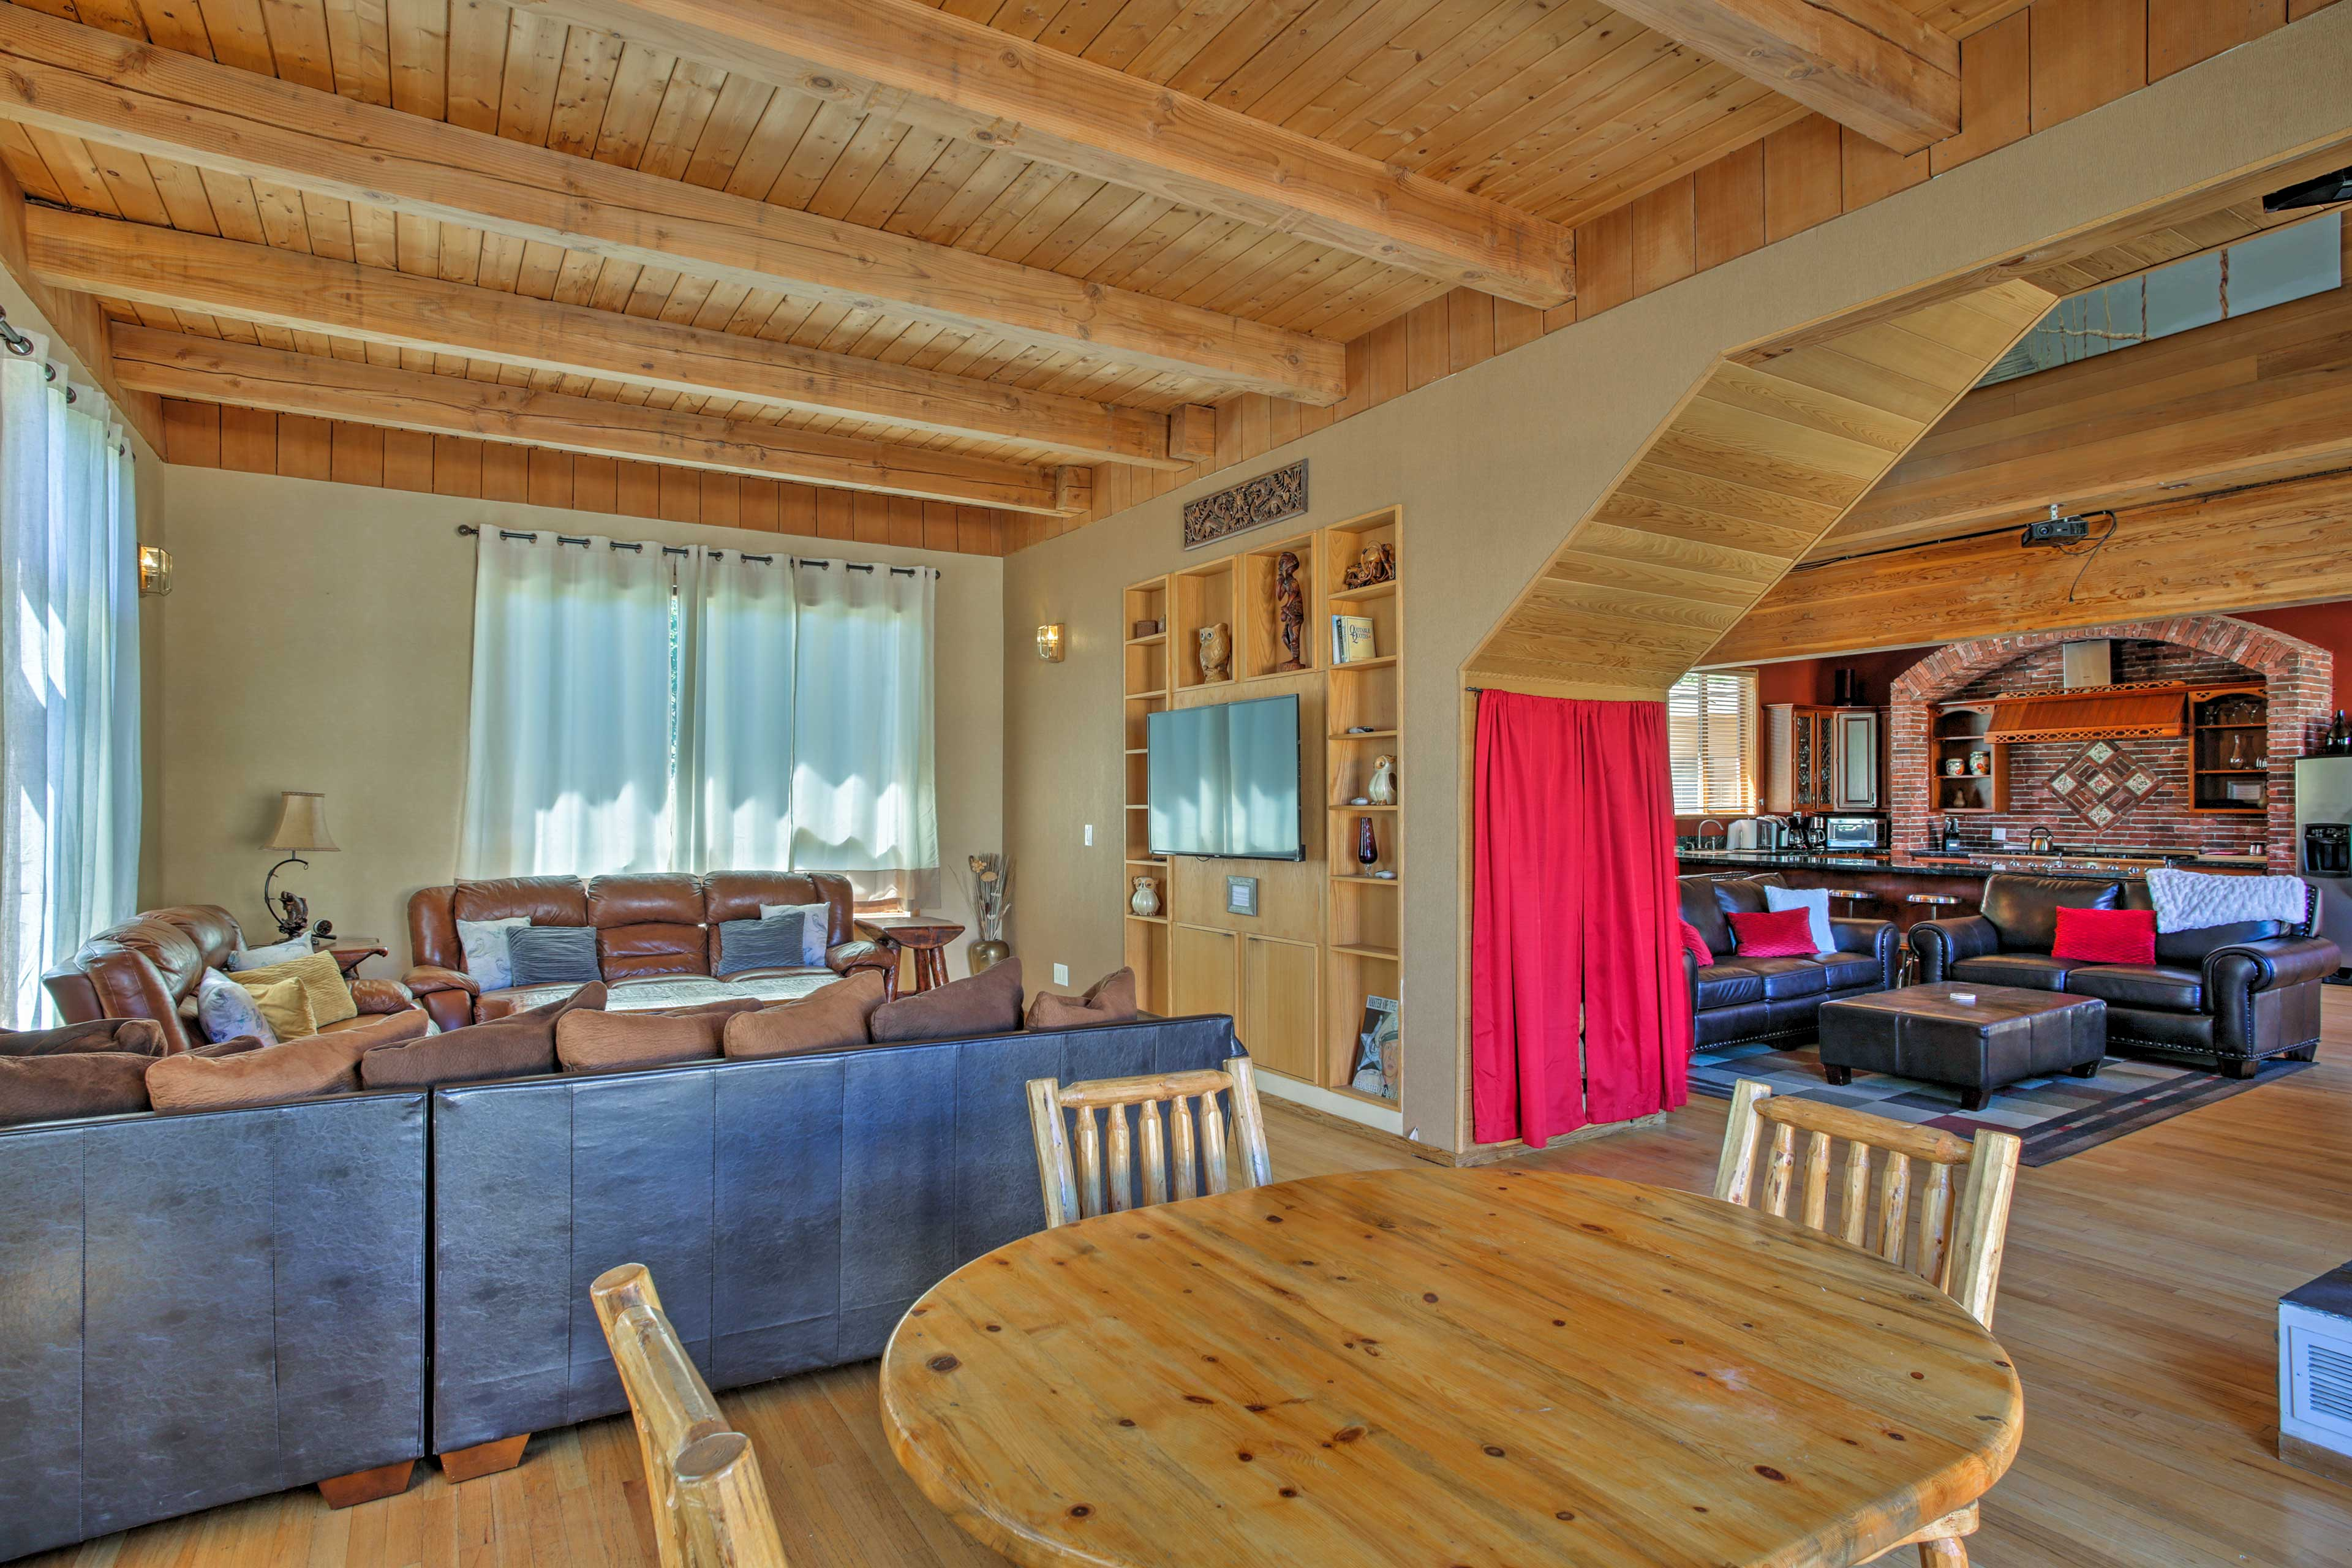 Plush leather couches & wood detailing complete this epic mountain retreat.